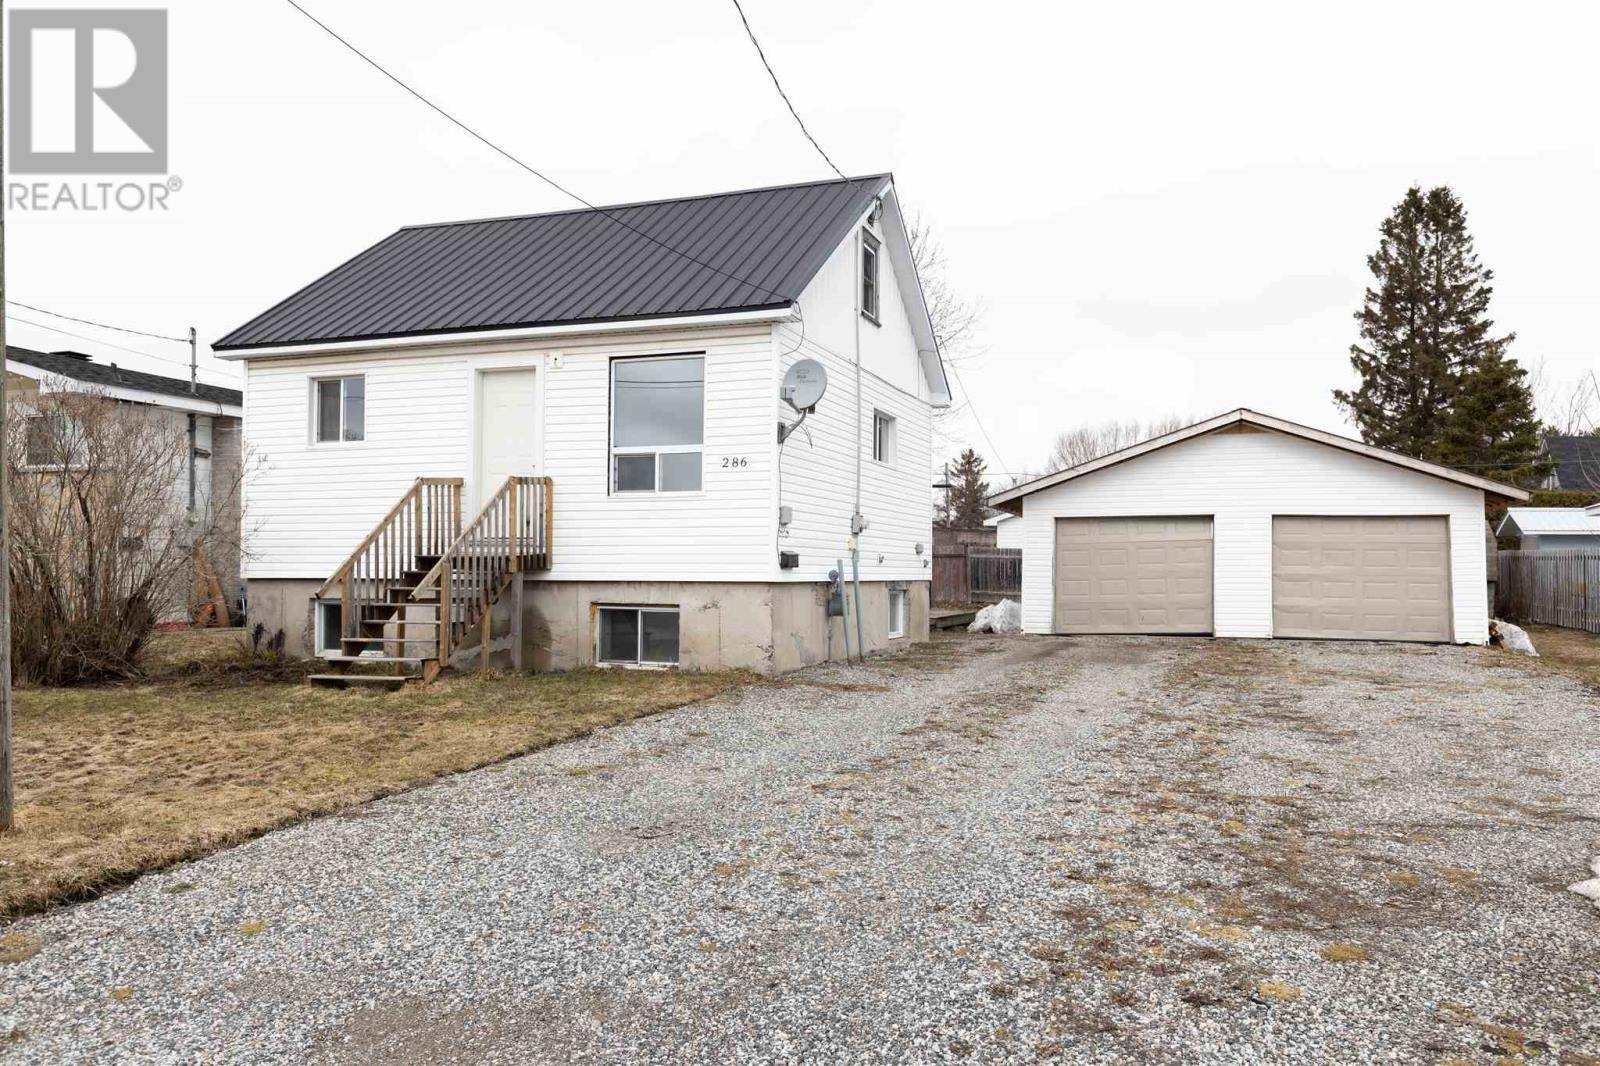 House for sale at 286 Doncaster Rd Sault Ste. Marie Ontario - MLS: SM128307